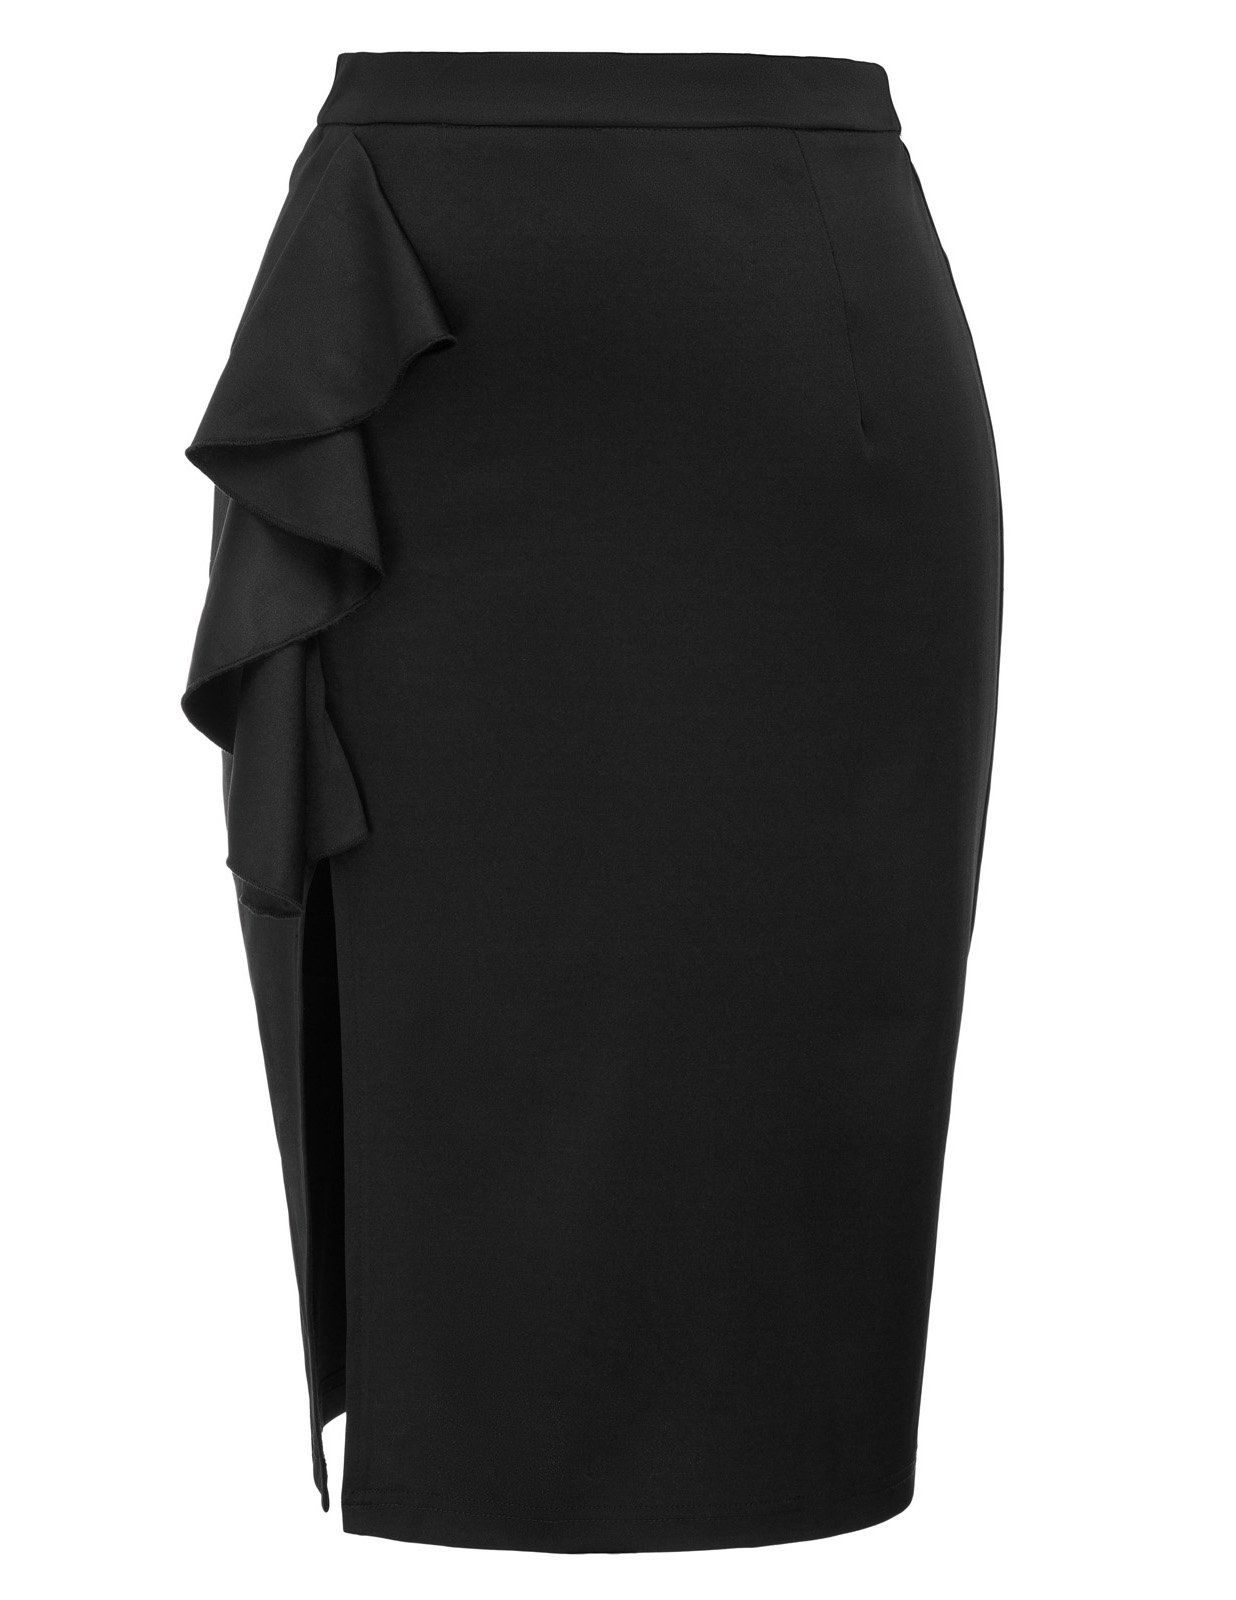 Kate Kasin Women's Knee Length High Waist Pencil Skirt with Ruffle Black Size S